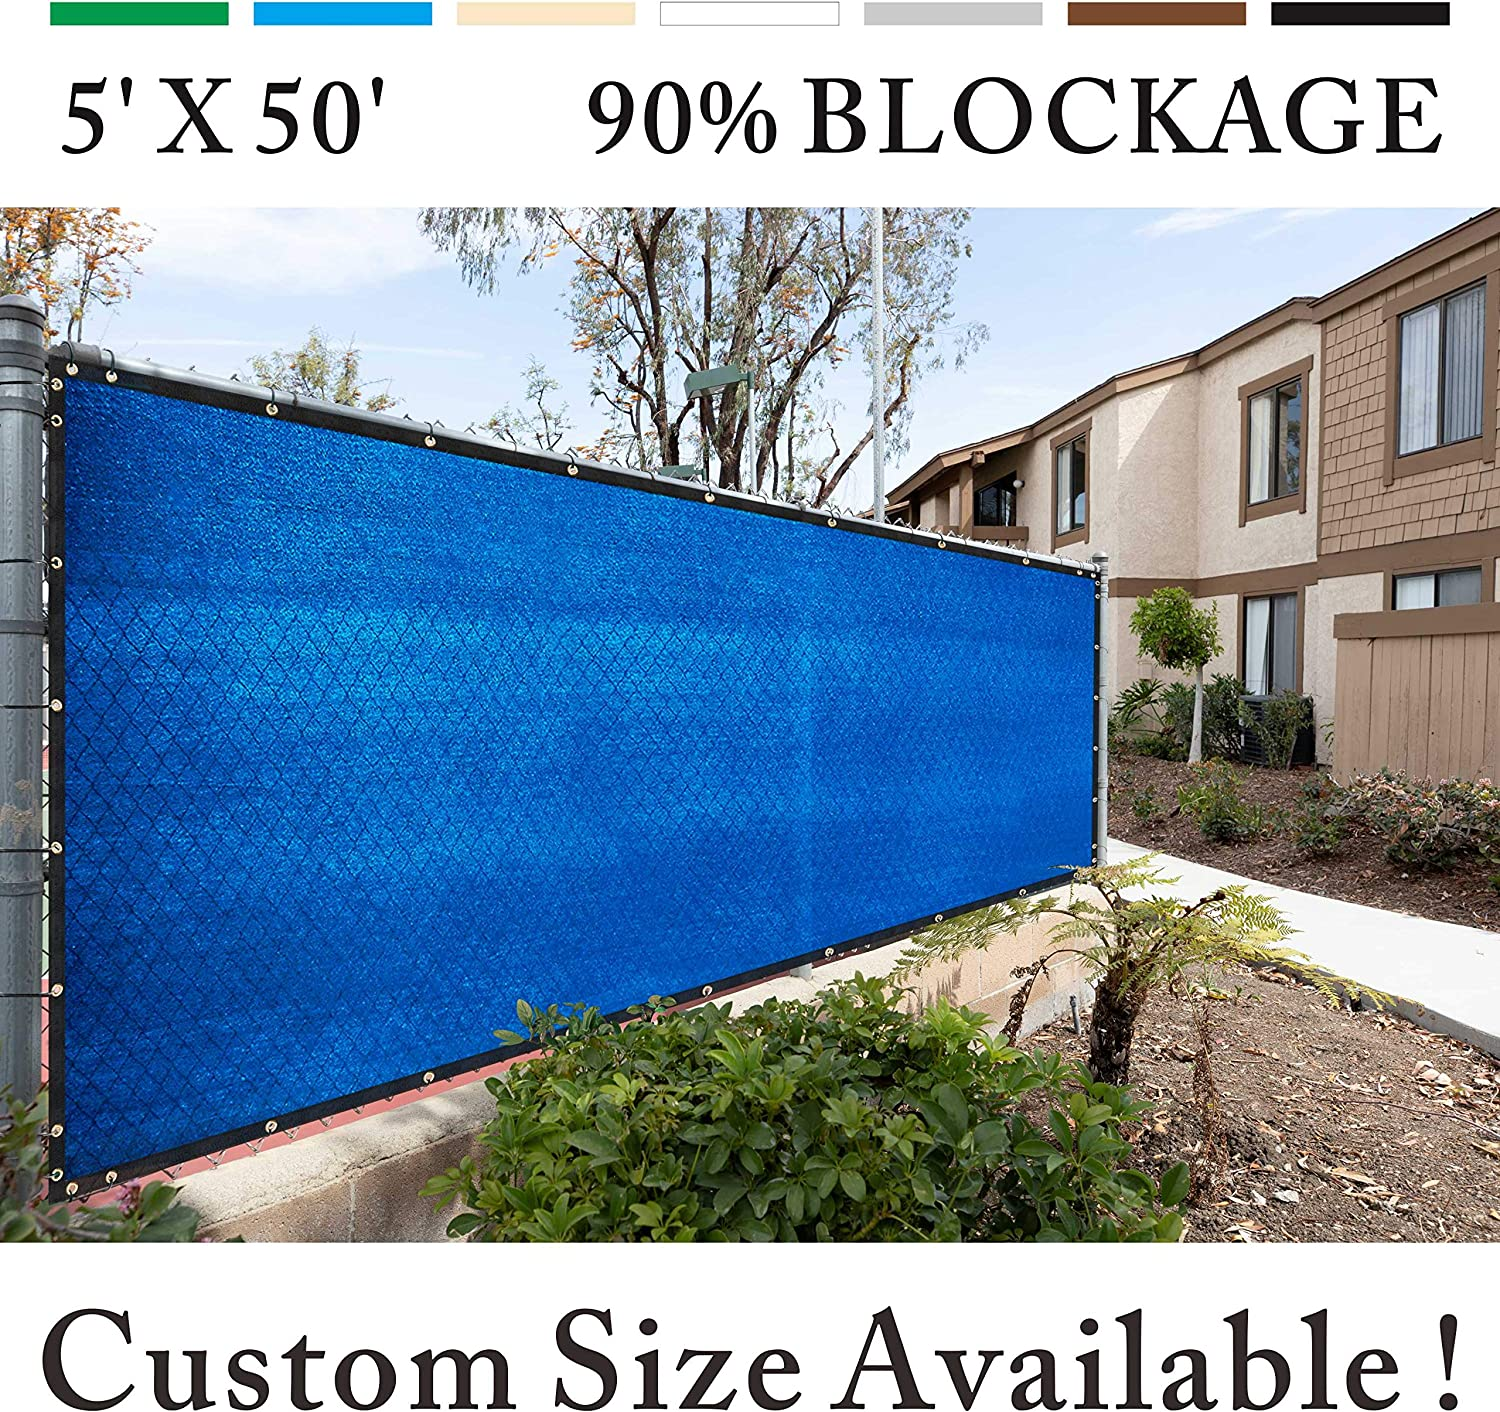 Royal Shade 5 x 50 Blue Fence Privacy Screen Windscreen Cover Netting Mesh Fabric Cloth Get Your Privacy Today Stop Neighbor Seeing-Through Stop Dogs Barking Protect Property WE Make Custom Size